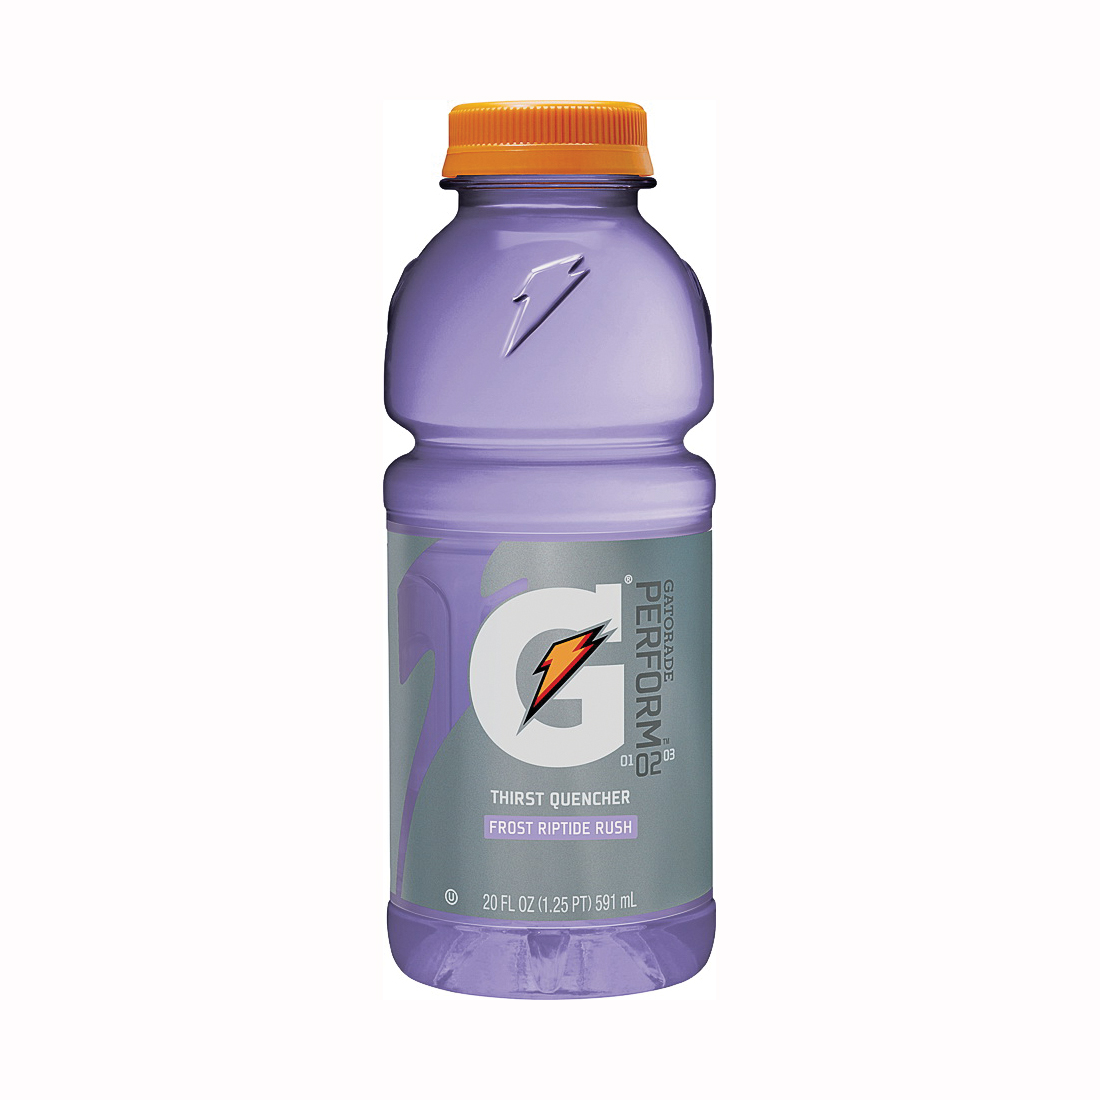 Picture of Gatorade G 32488 Thirst Quencher Sports Drink, Liquid, Riptide Rush Flavor, 20 oz Package, Bottle